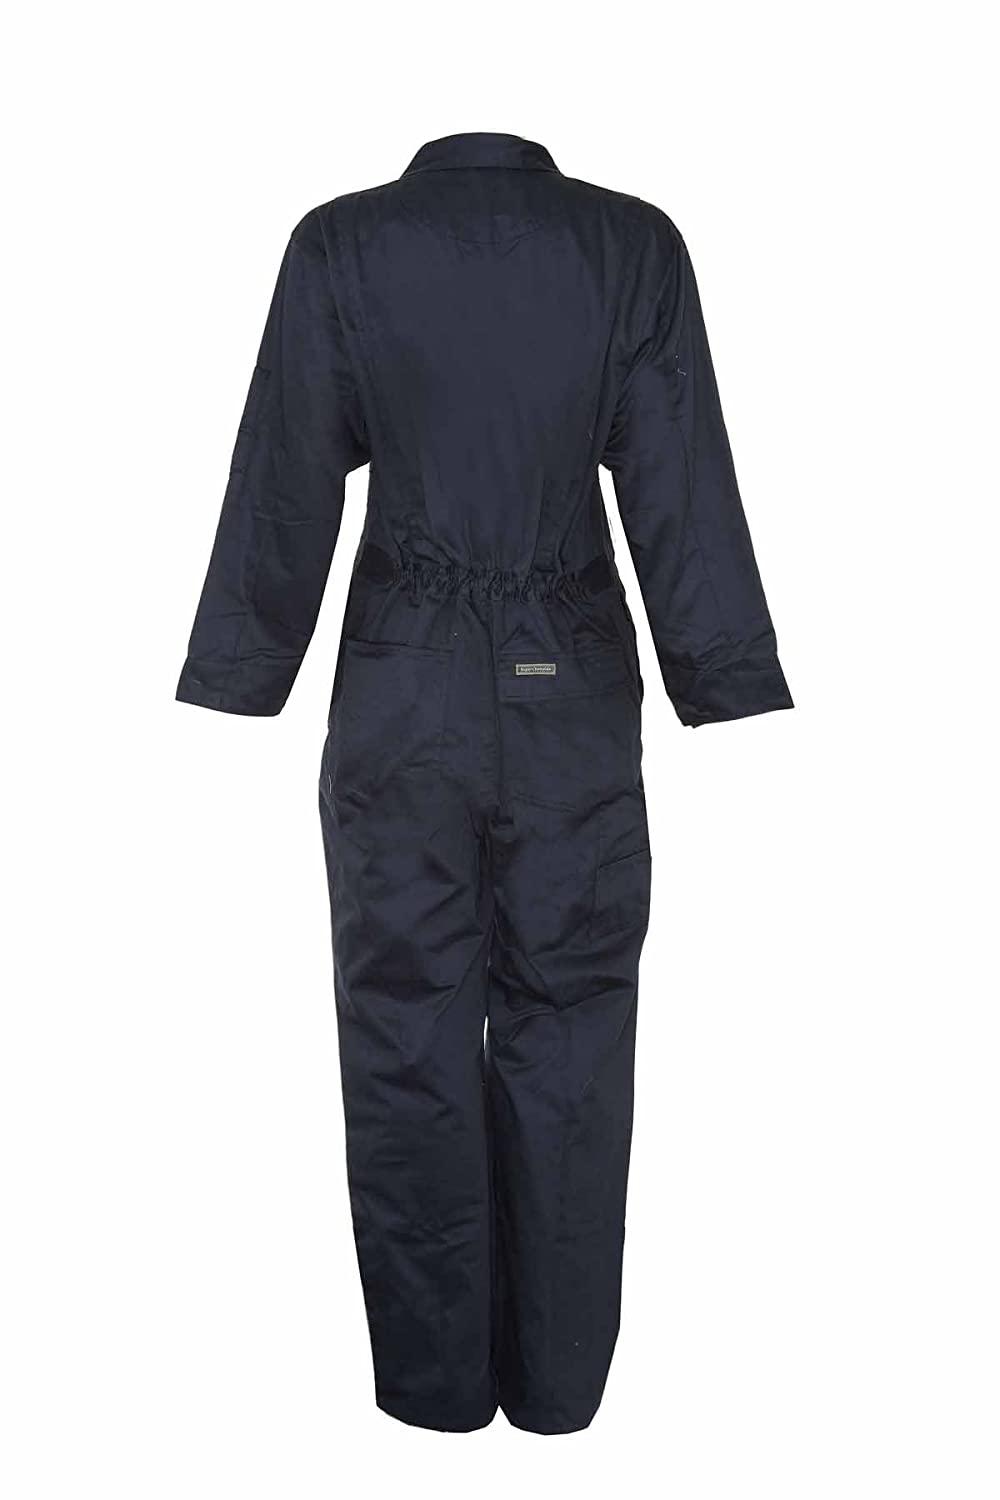 Champion Mens Classic Heavy Duty Twill Boilersuit Overalls Navy Blue 36